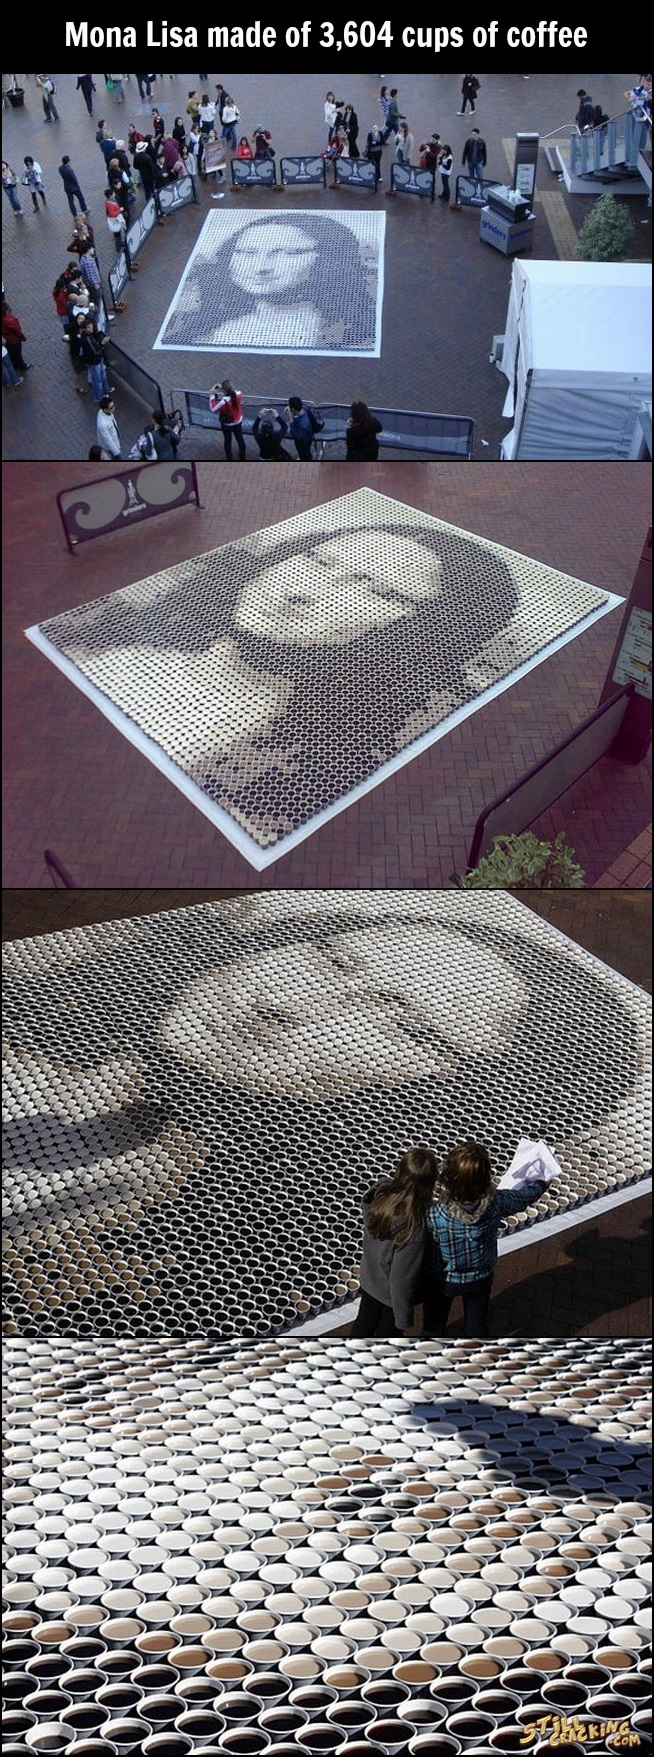 art, coffee, Mona Lisa made of coffee cups